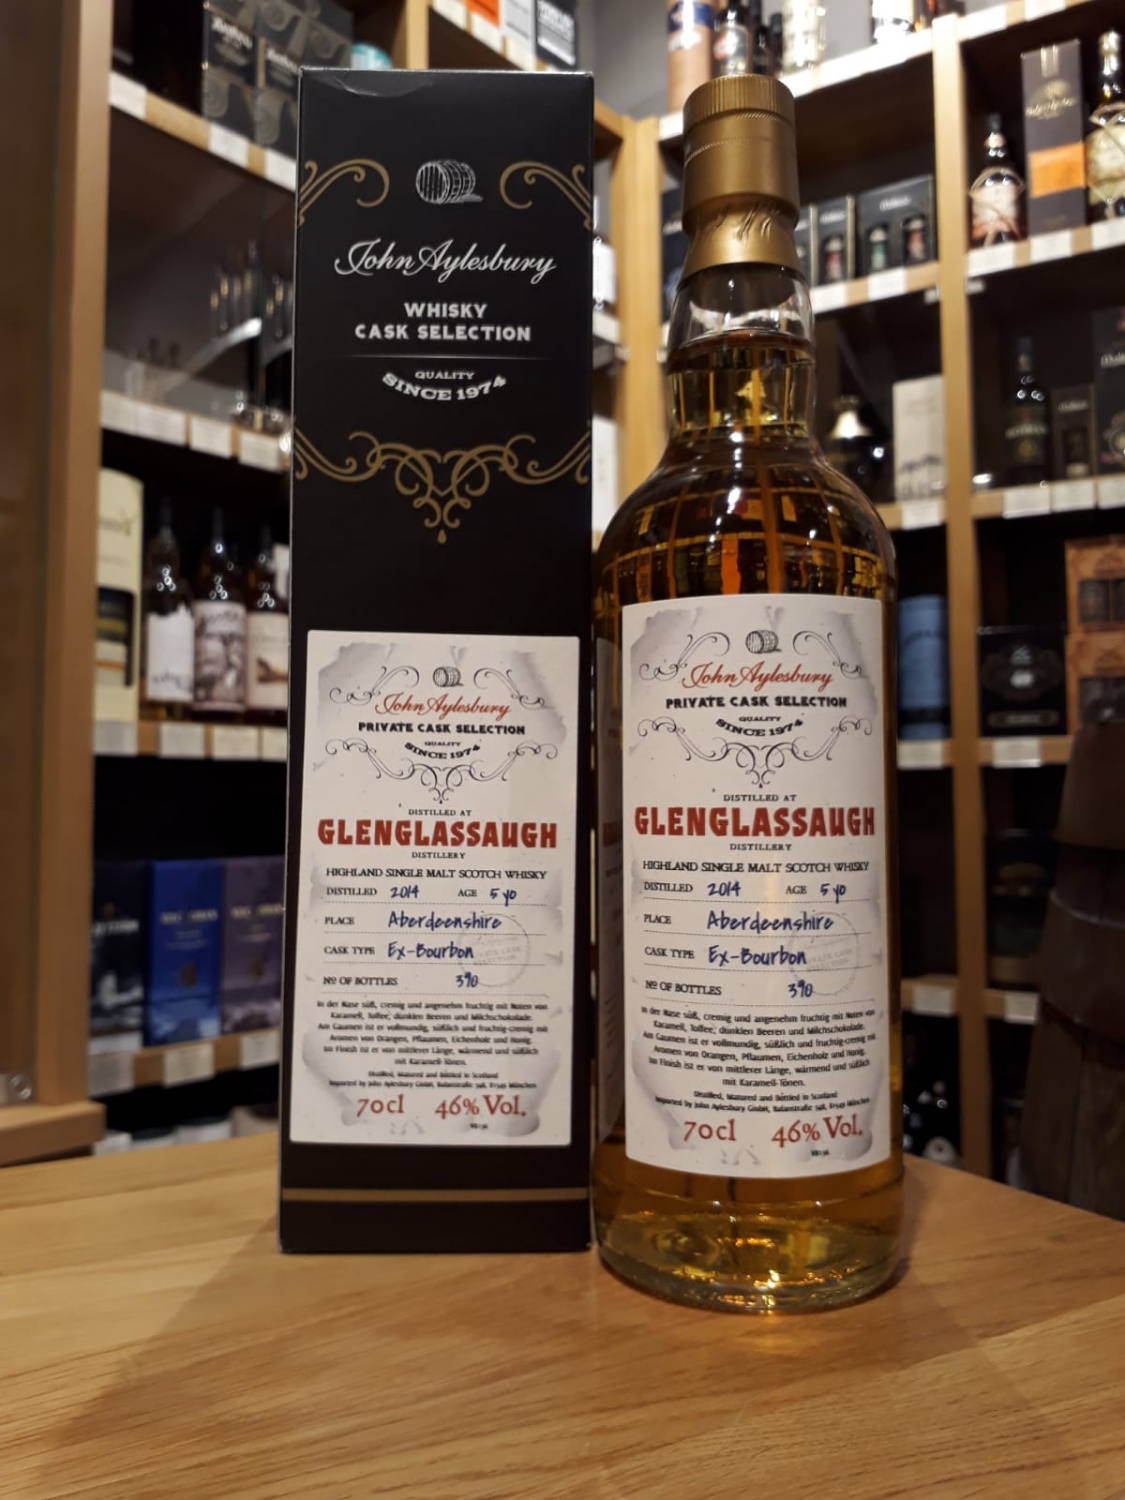 John Aylesbury Private Cask Glenglassaugh 5 yo